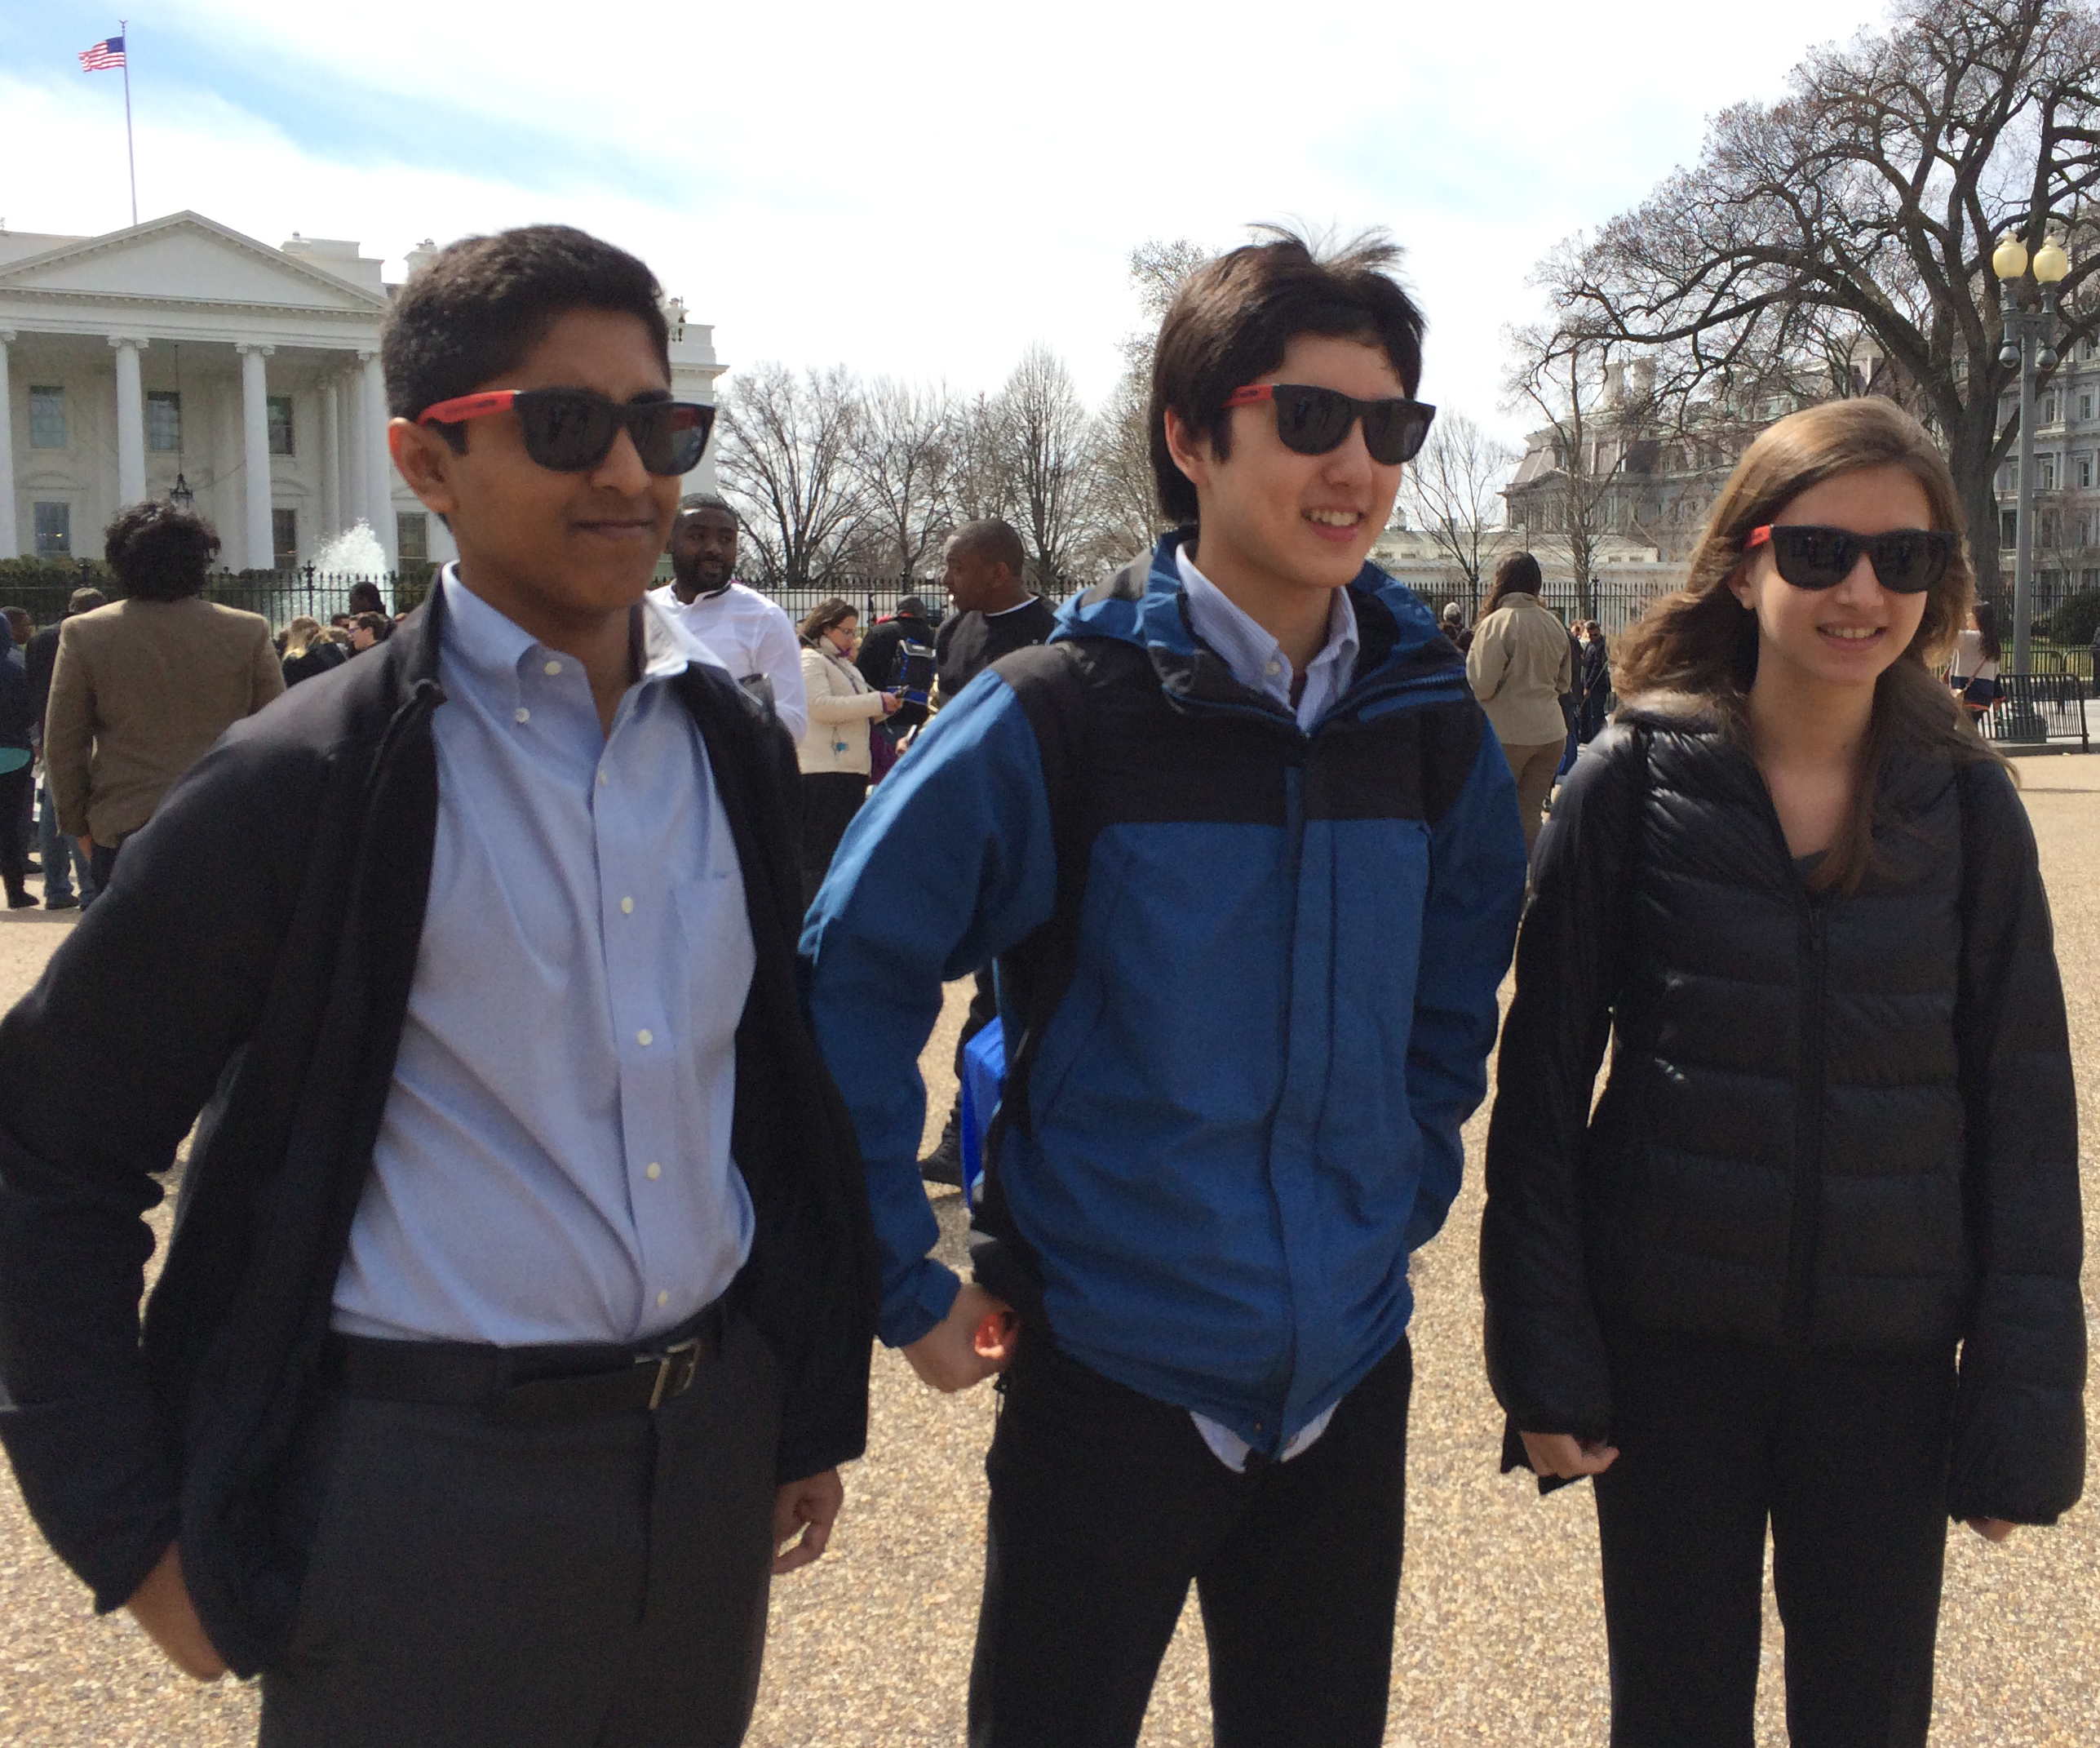 Nikhil Behari, Nathan Han, and Holly Jackson are all Broadcom MASTERS alumni. Nathan is also an Intel ISEF 2014 finalist.